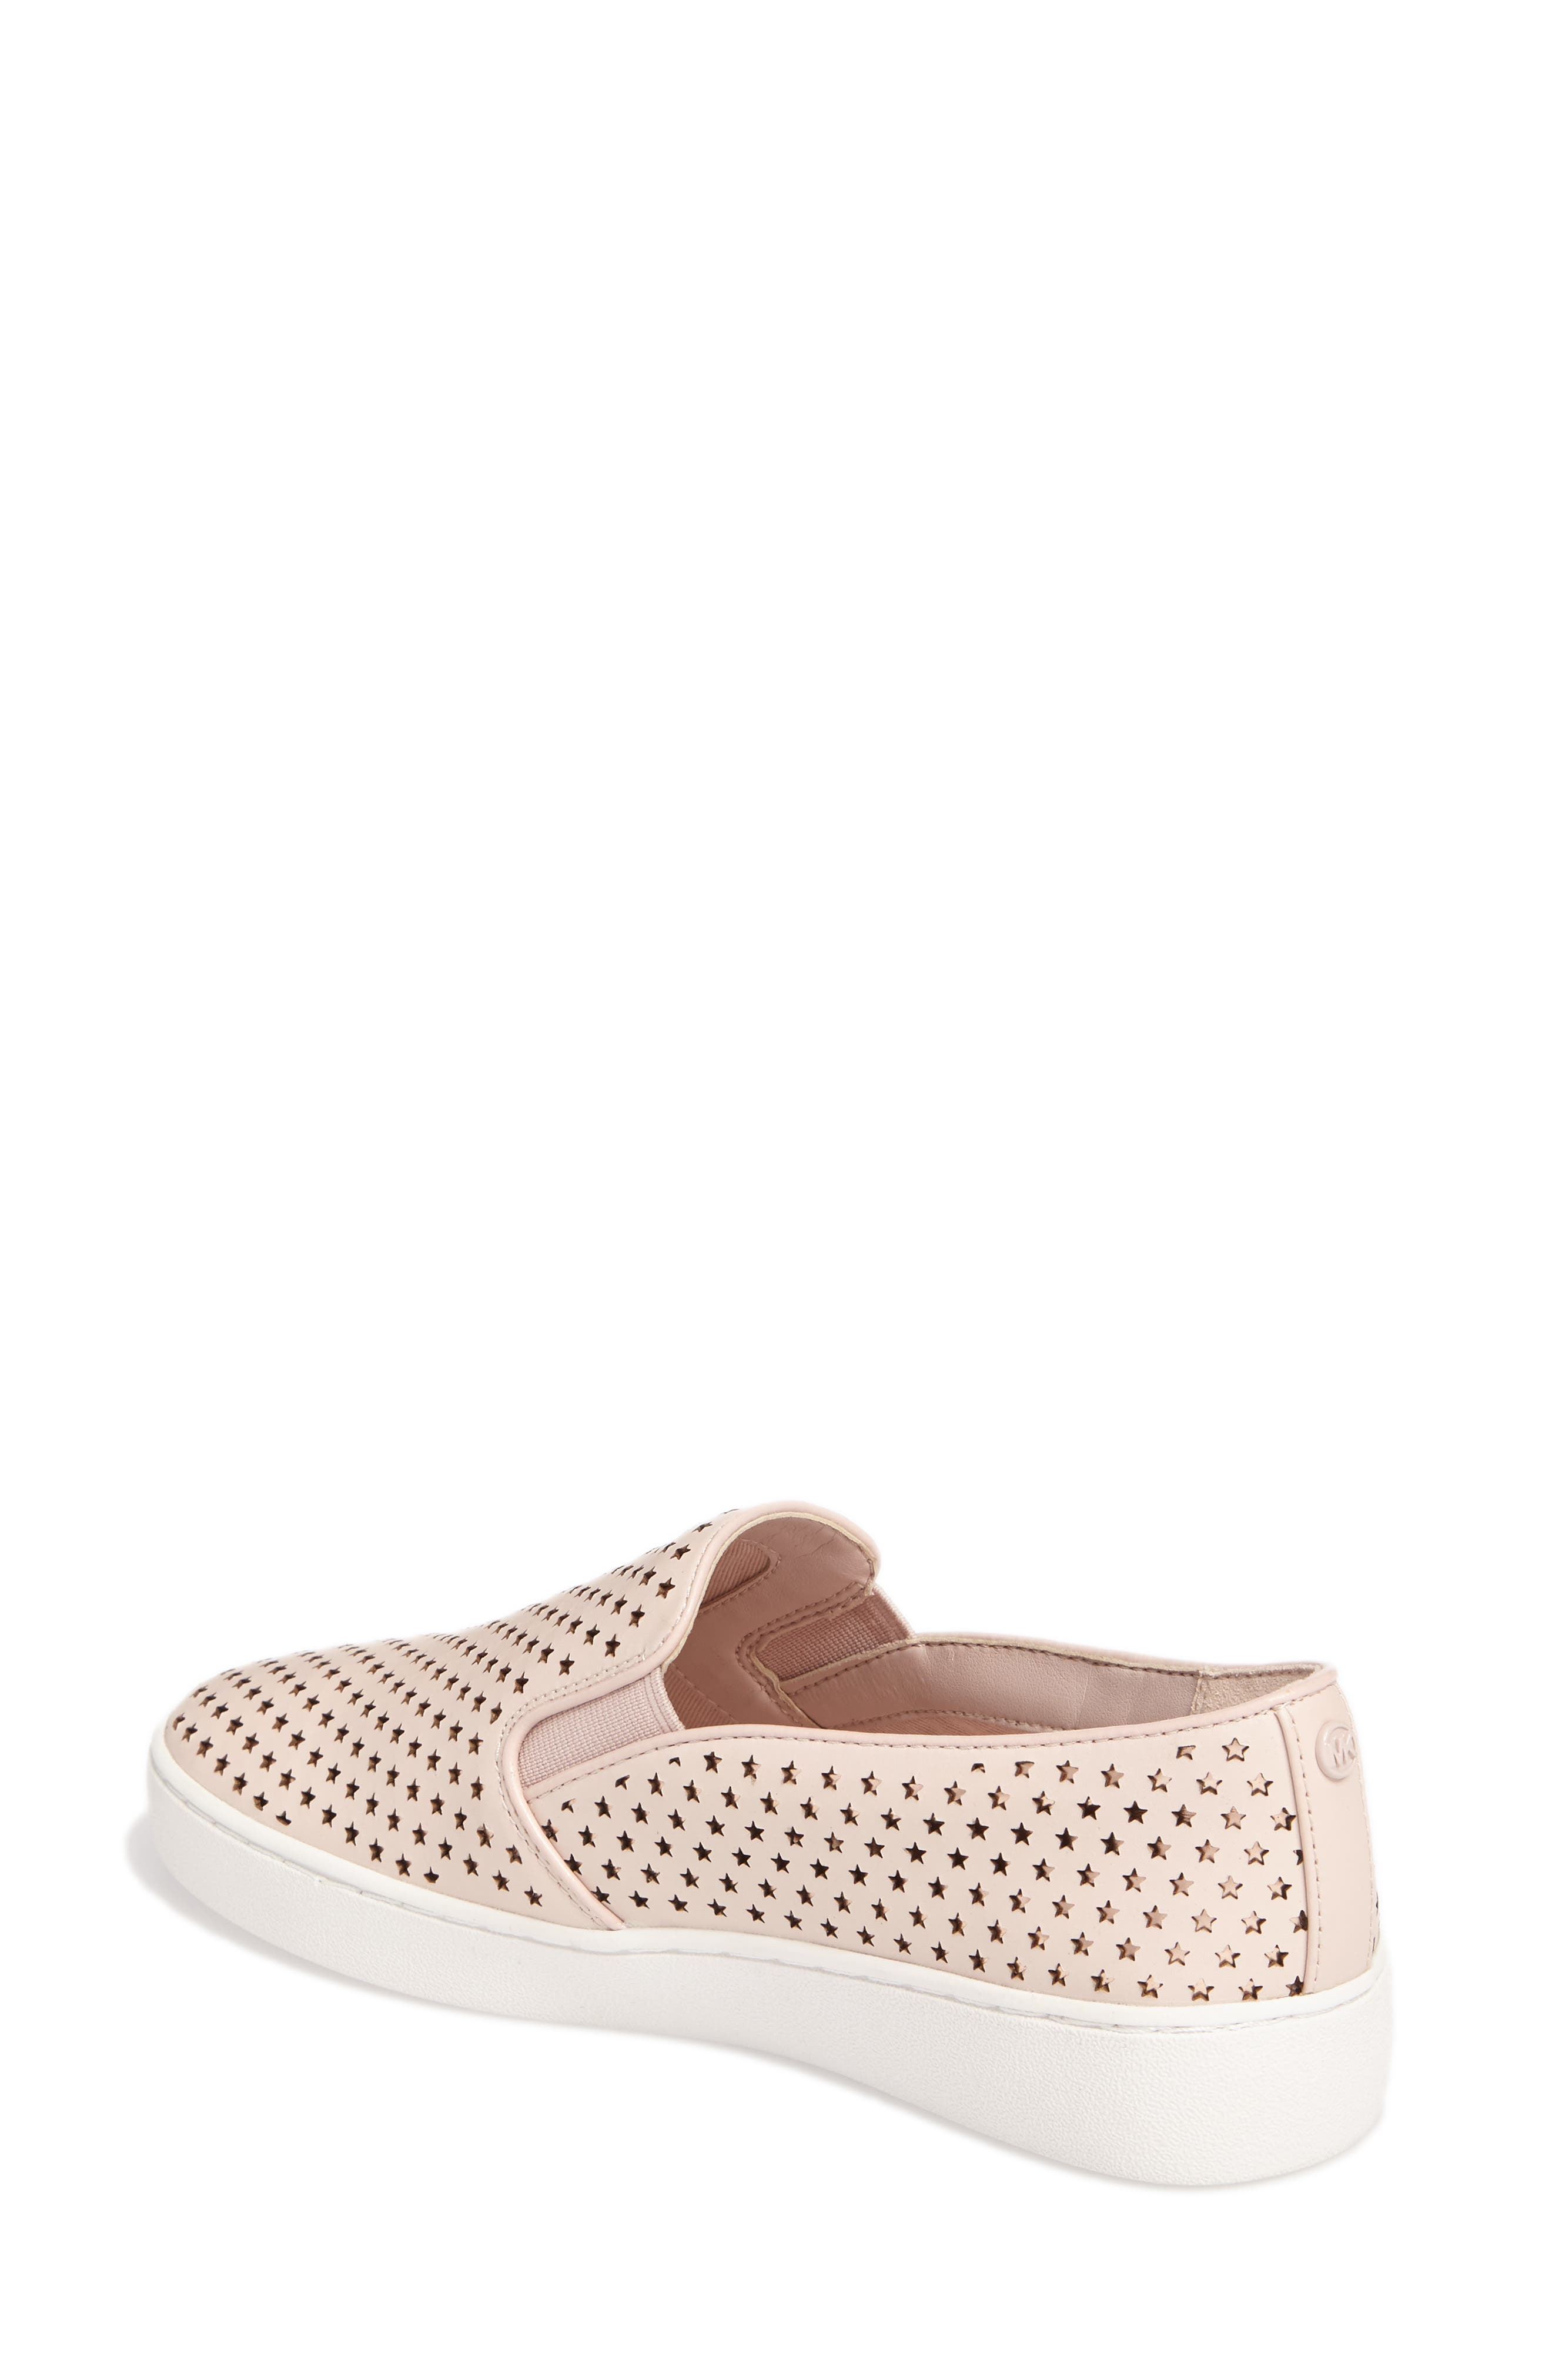 Alternate Image 2  - MICHAEL Michael Kors Keaton Slip-On Sneaker (Women)